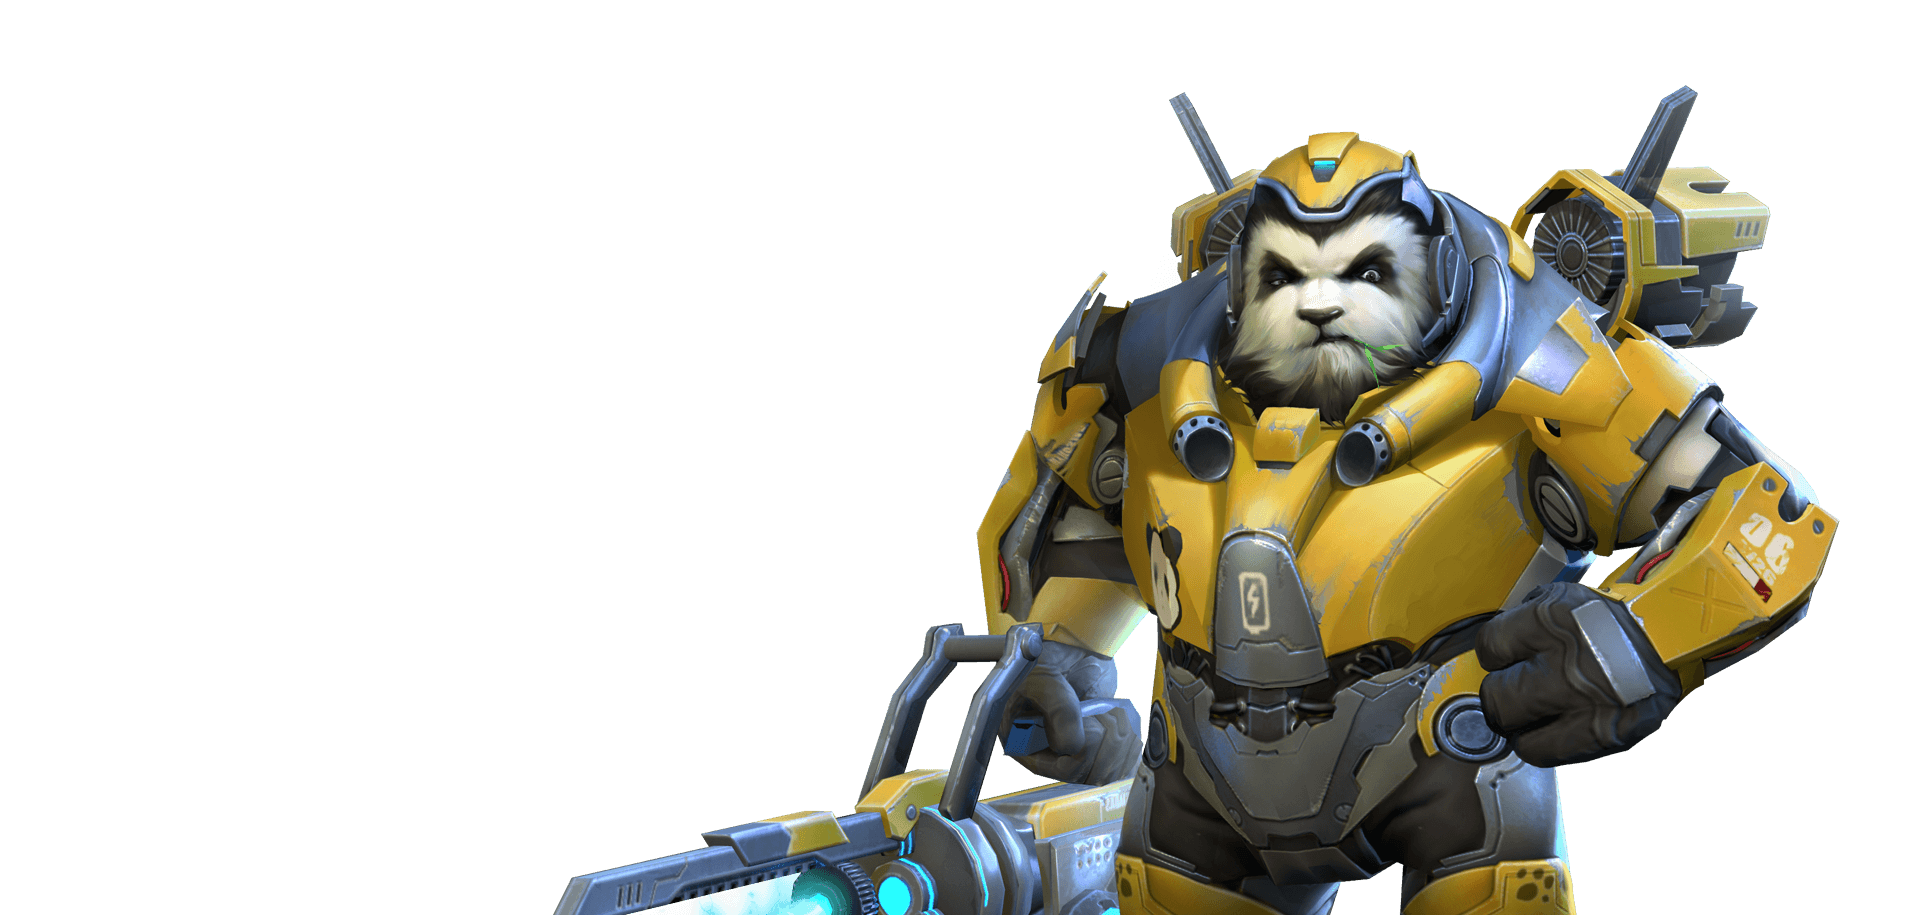 Winston overwatch png. Chinese clone has some